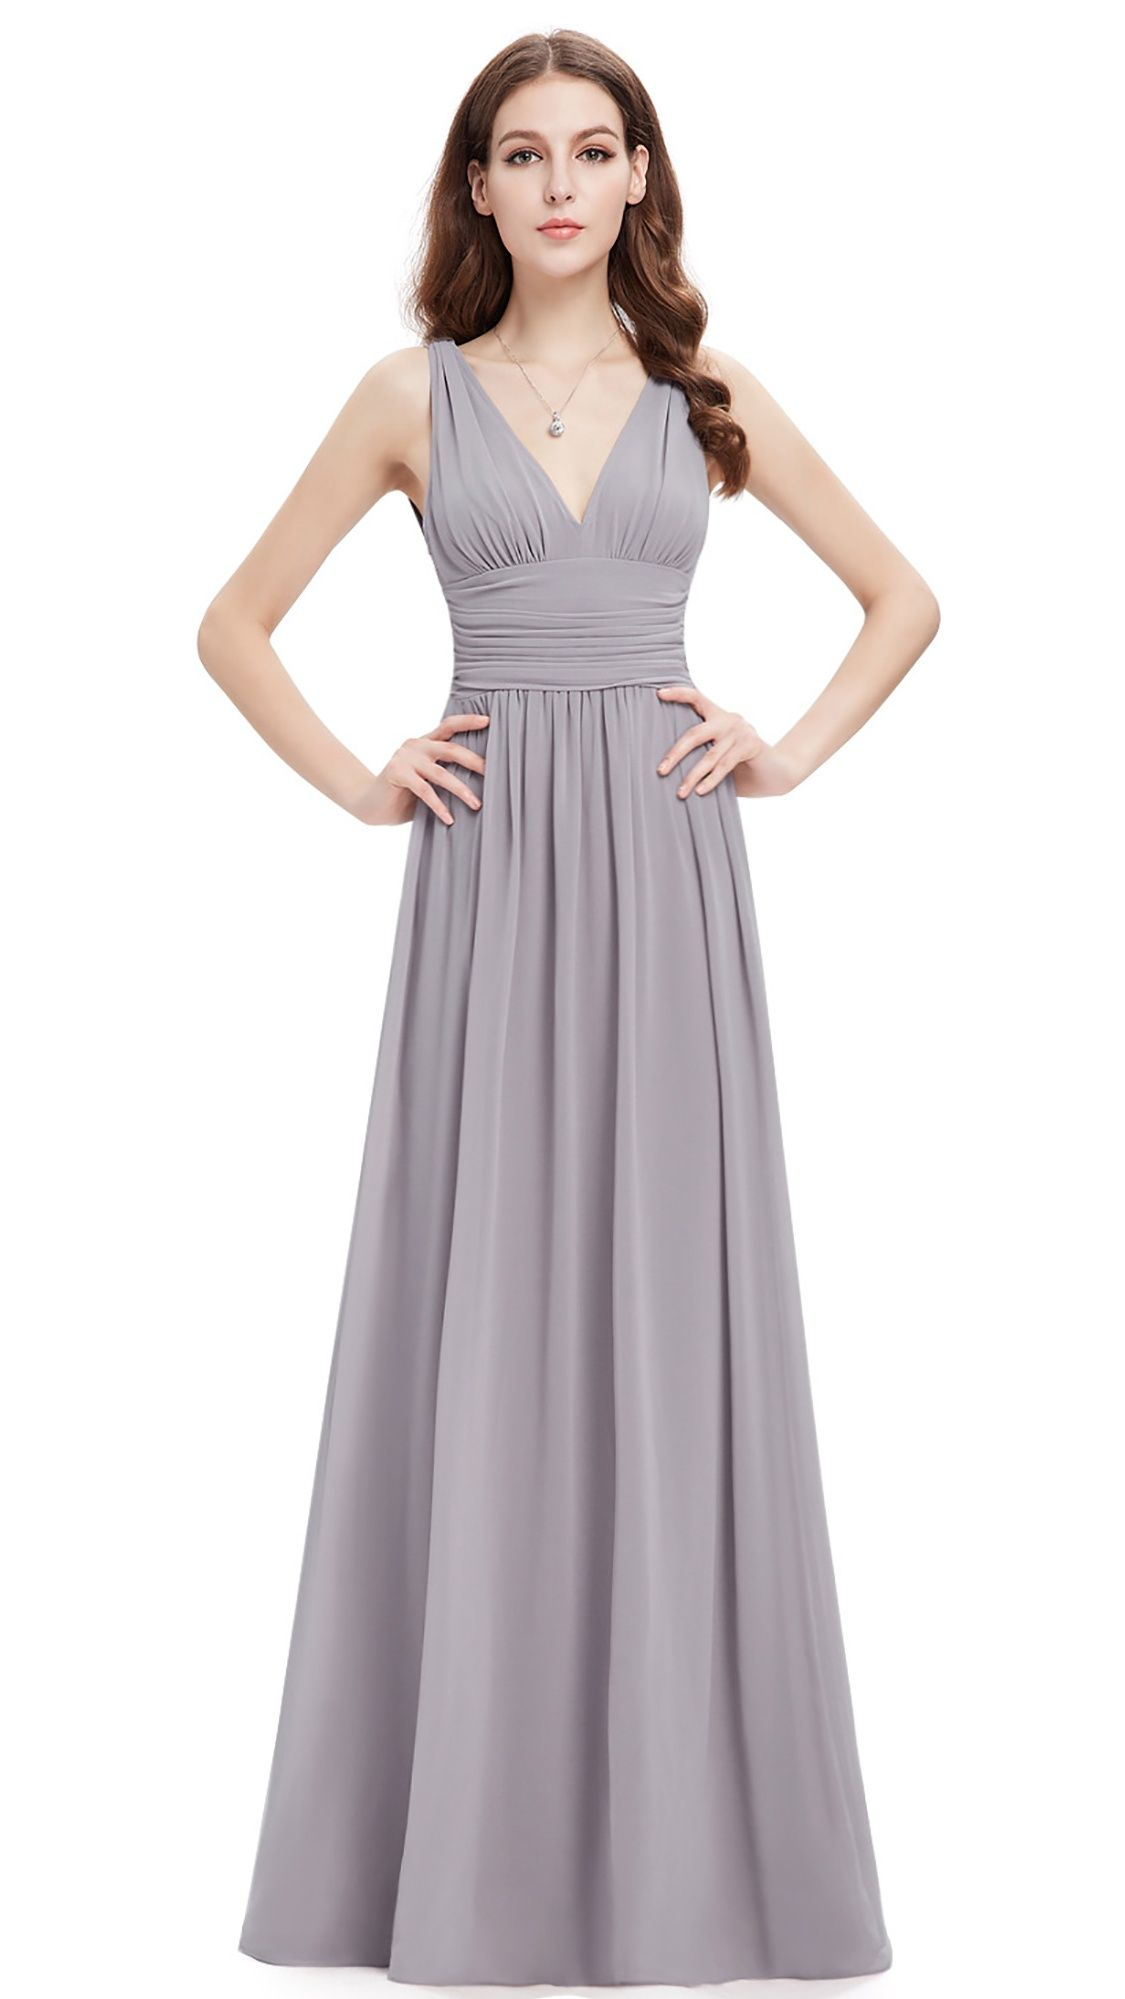 aa7cd1bdfbb6 Ever-Pretty Women's Elegant Long V-Neck Sleeveless Semi-Formal Evening Prom  Party Bridesmaid Maxi Dresses for Women 09016 (Floral 4 US)#Sleeveless, # Neck, ...